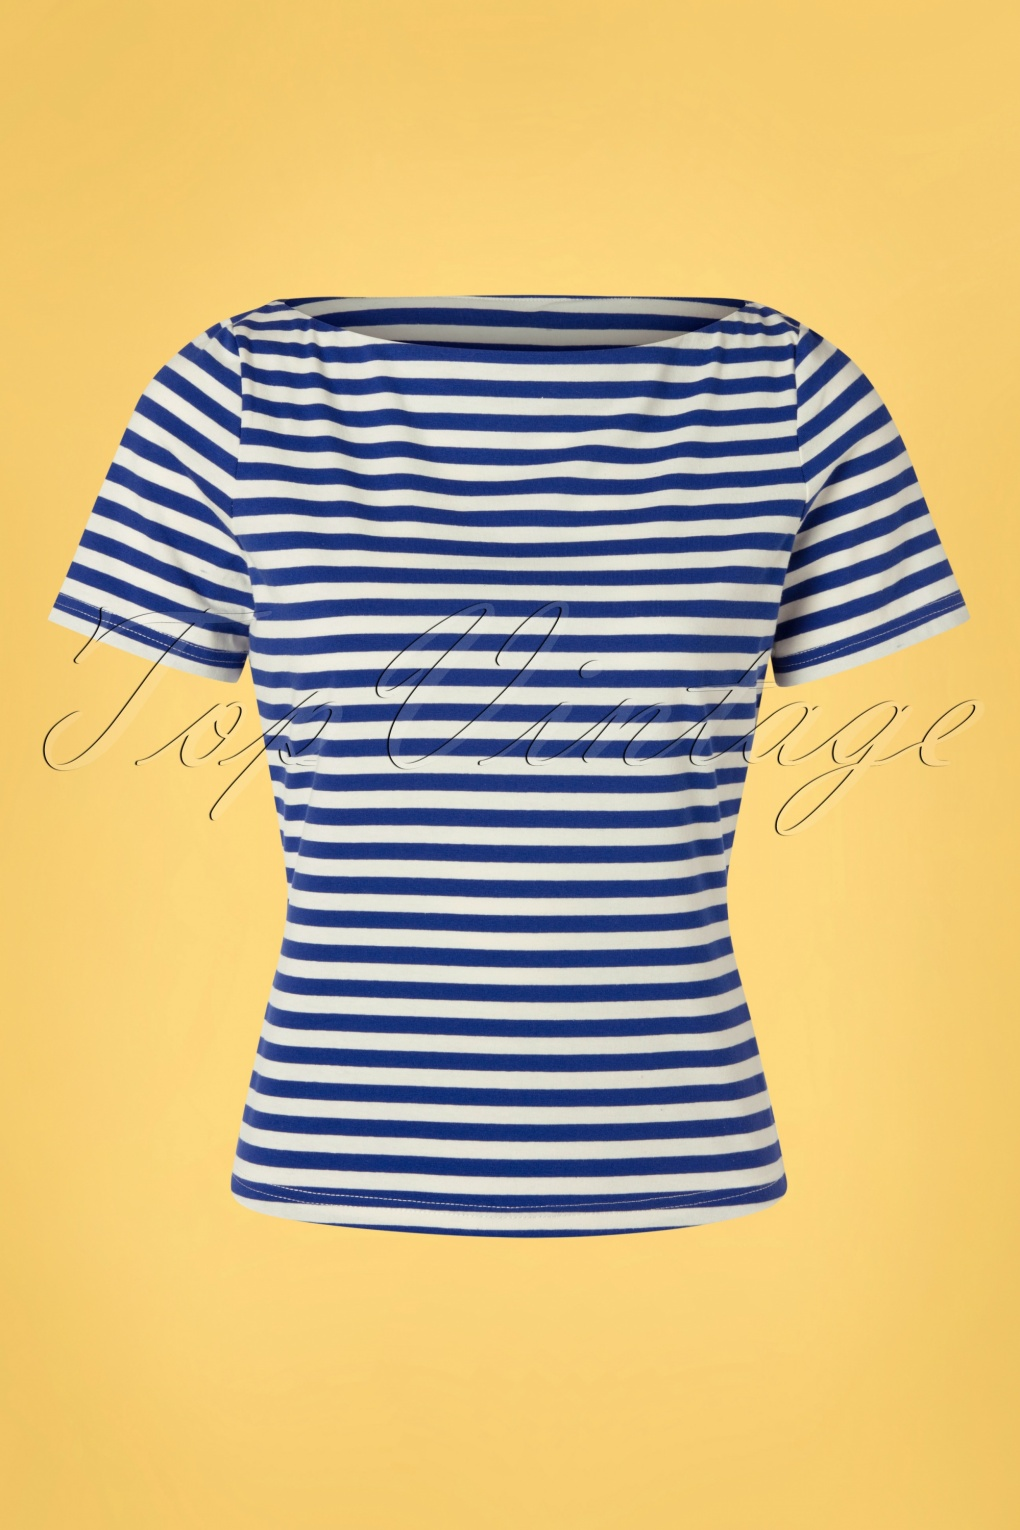 60s Dresses & 60s Style Dresses UK 60s Sally Striped Top in Blue and White £17.25 AT vintagedancer.com